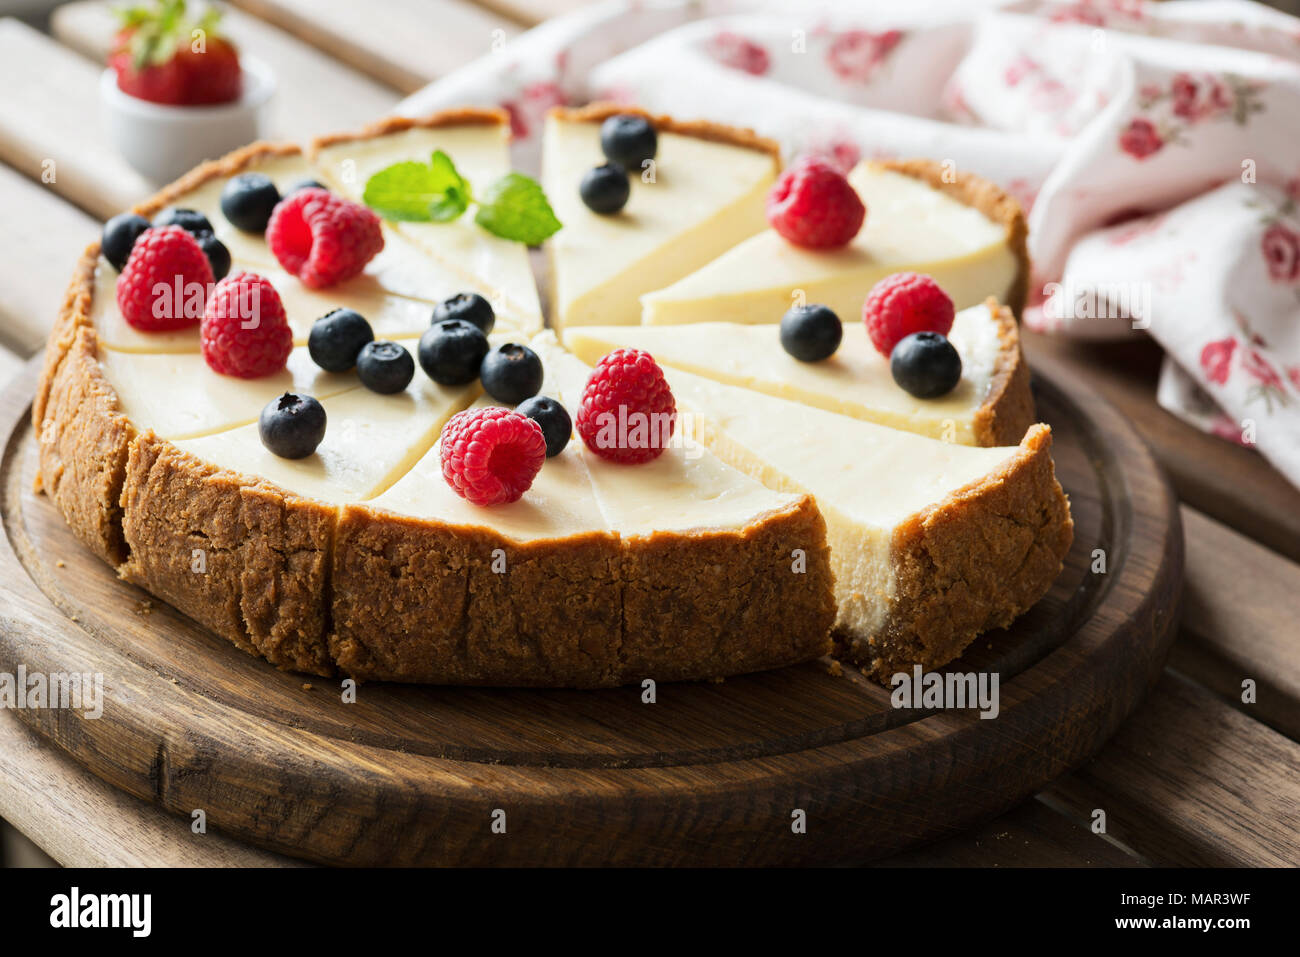 Classical Cheesecake with fresh berries on wooden board, selective focus, horizontal composition - Stock Image